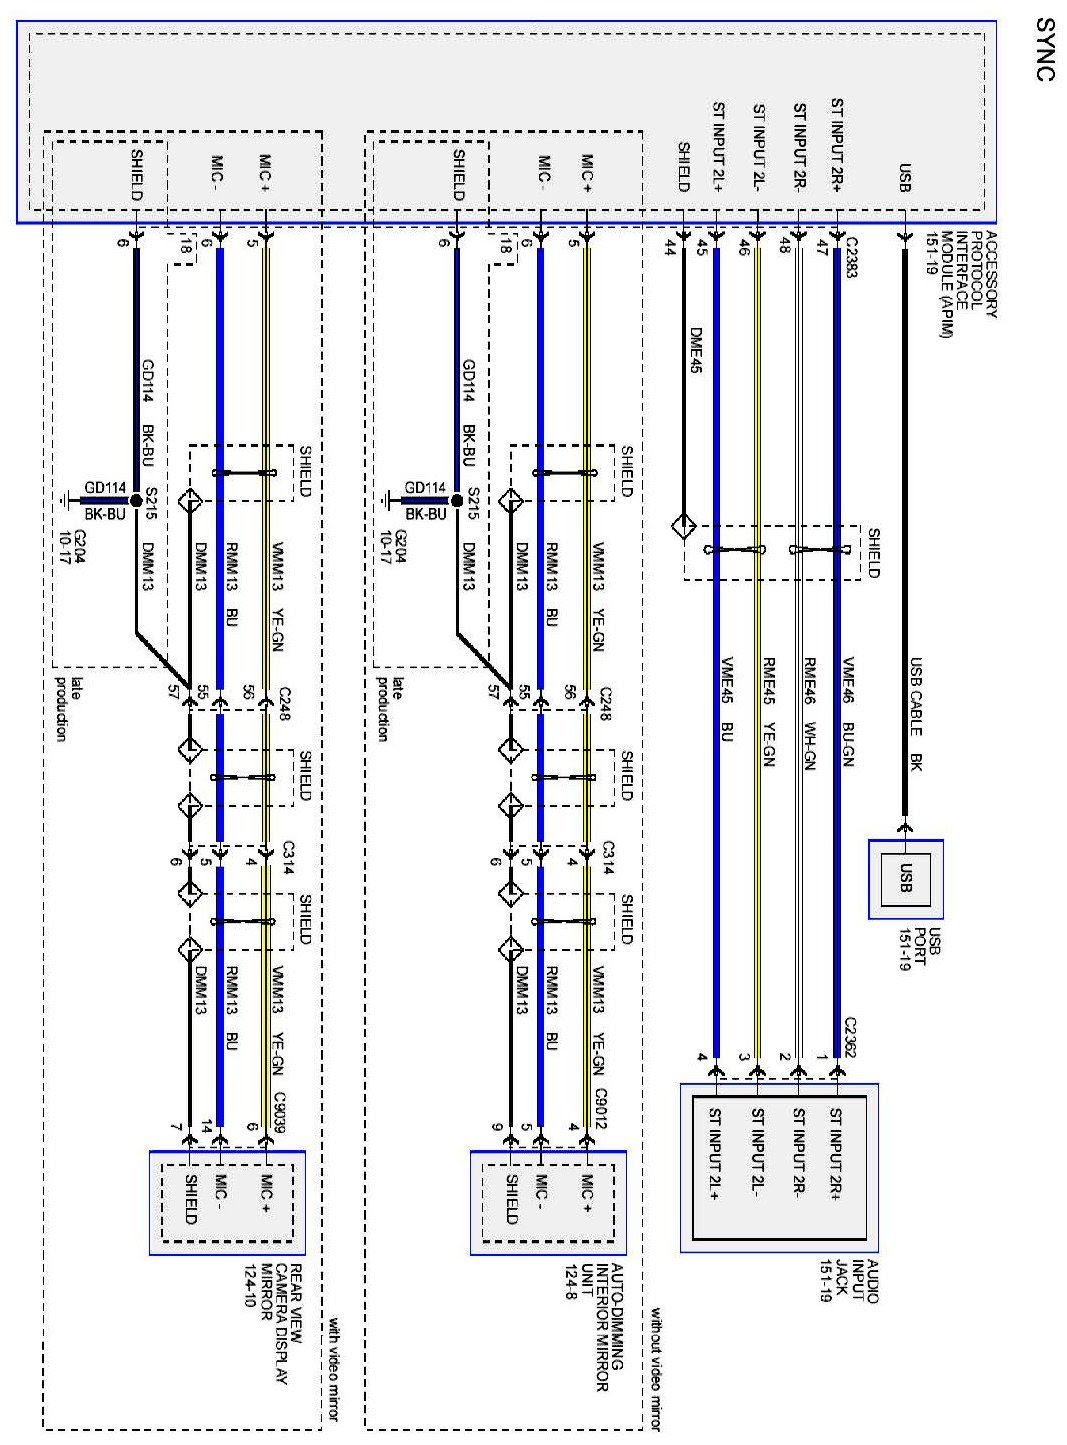 2003 Ford F150 Radio Wiring Diagram from lh3.googleusercontent.com